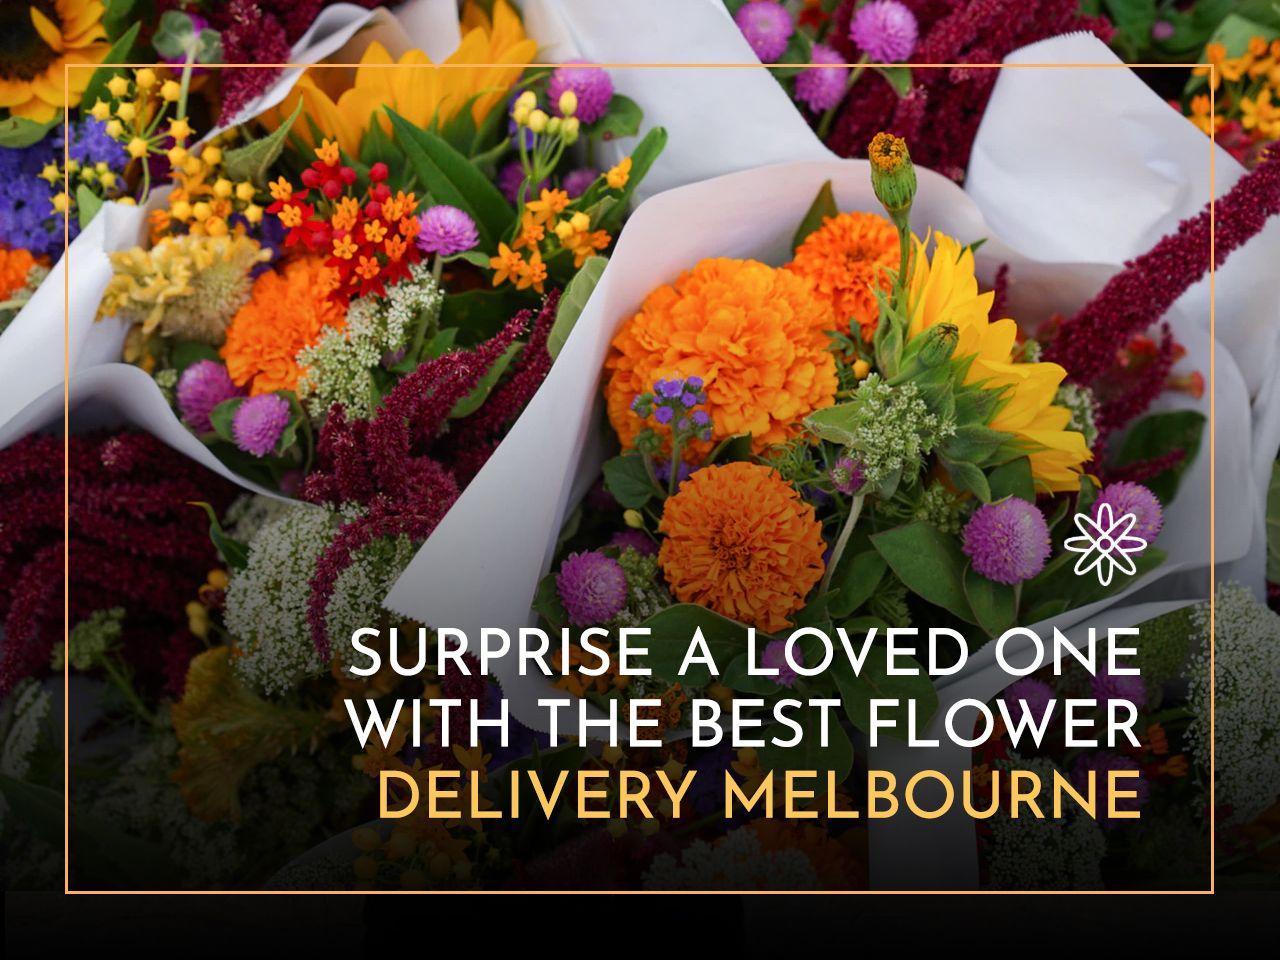 Best Flower Delivery Melbourne